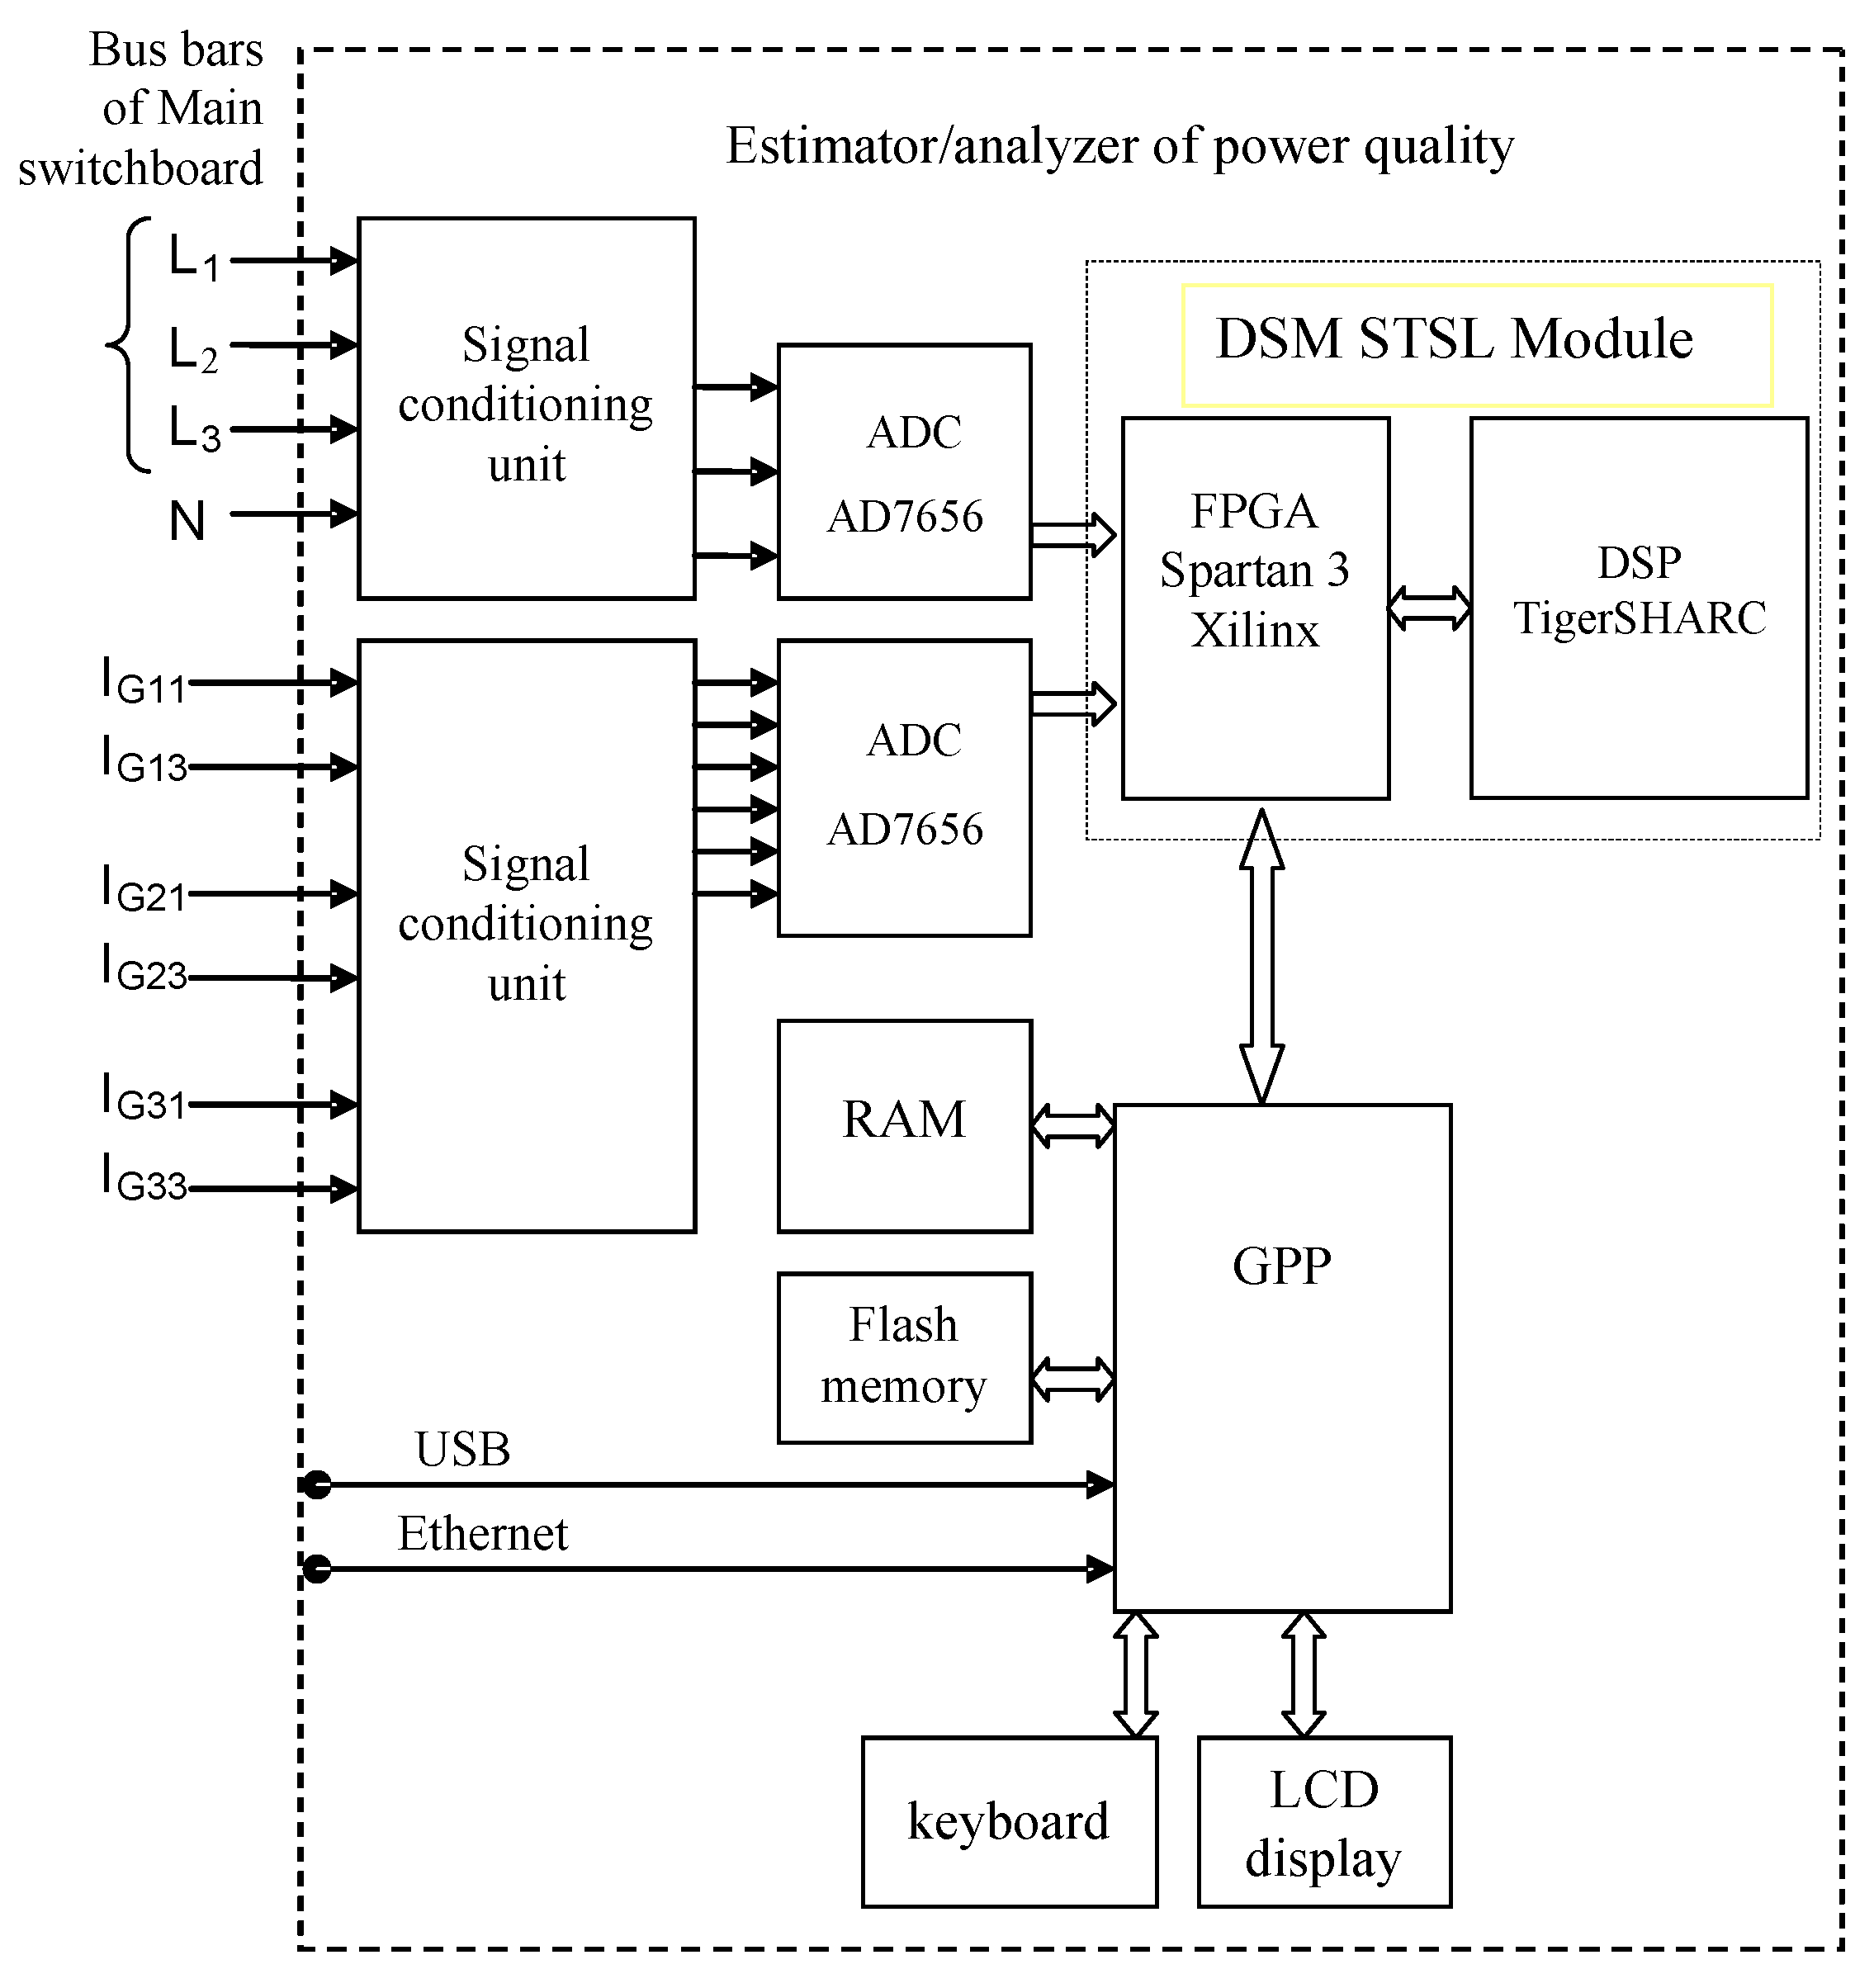 Energies Free Full Text Validation Of The Measurement Am I Wiring This Relay Wrong Dsmtuners 10 00536 G002